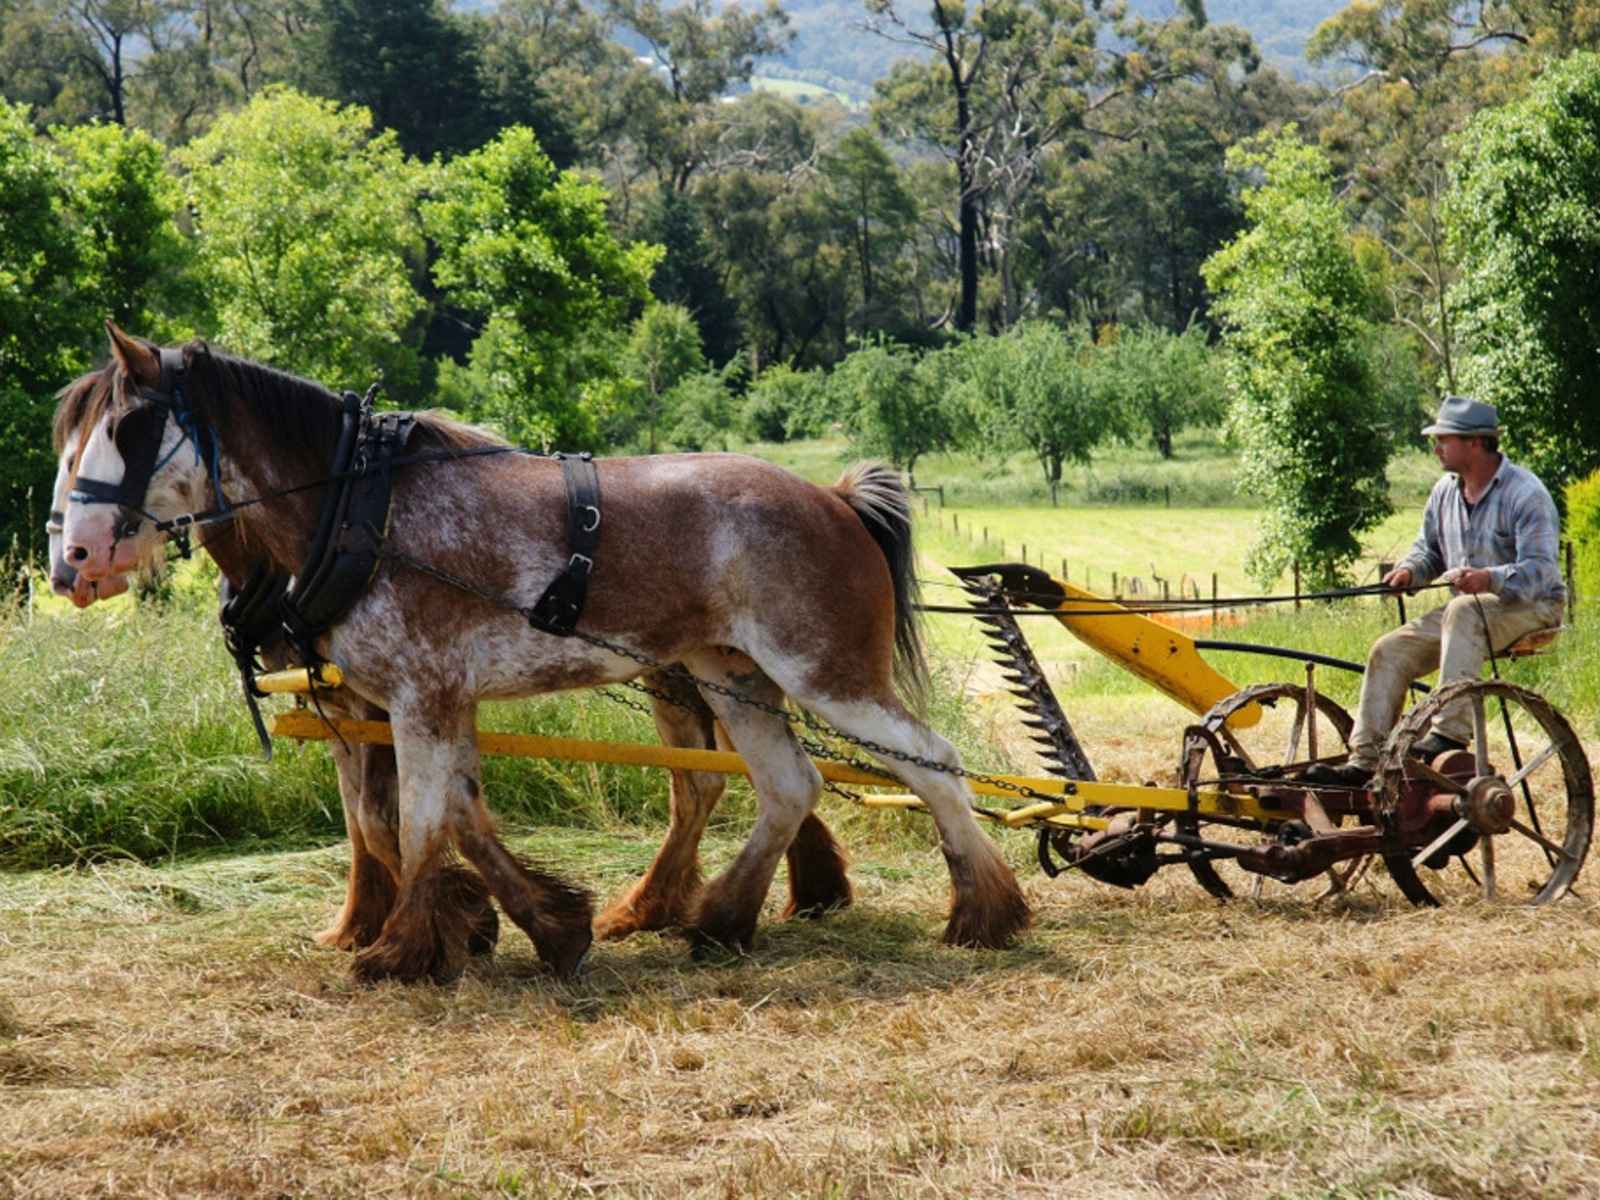 Draughthorse cutting the field